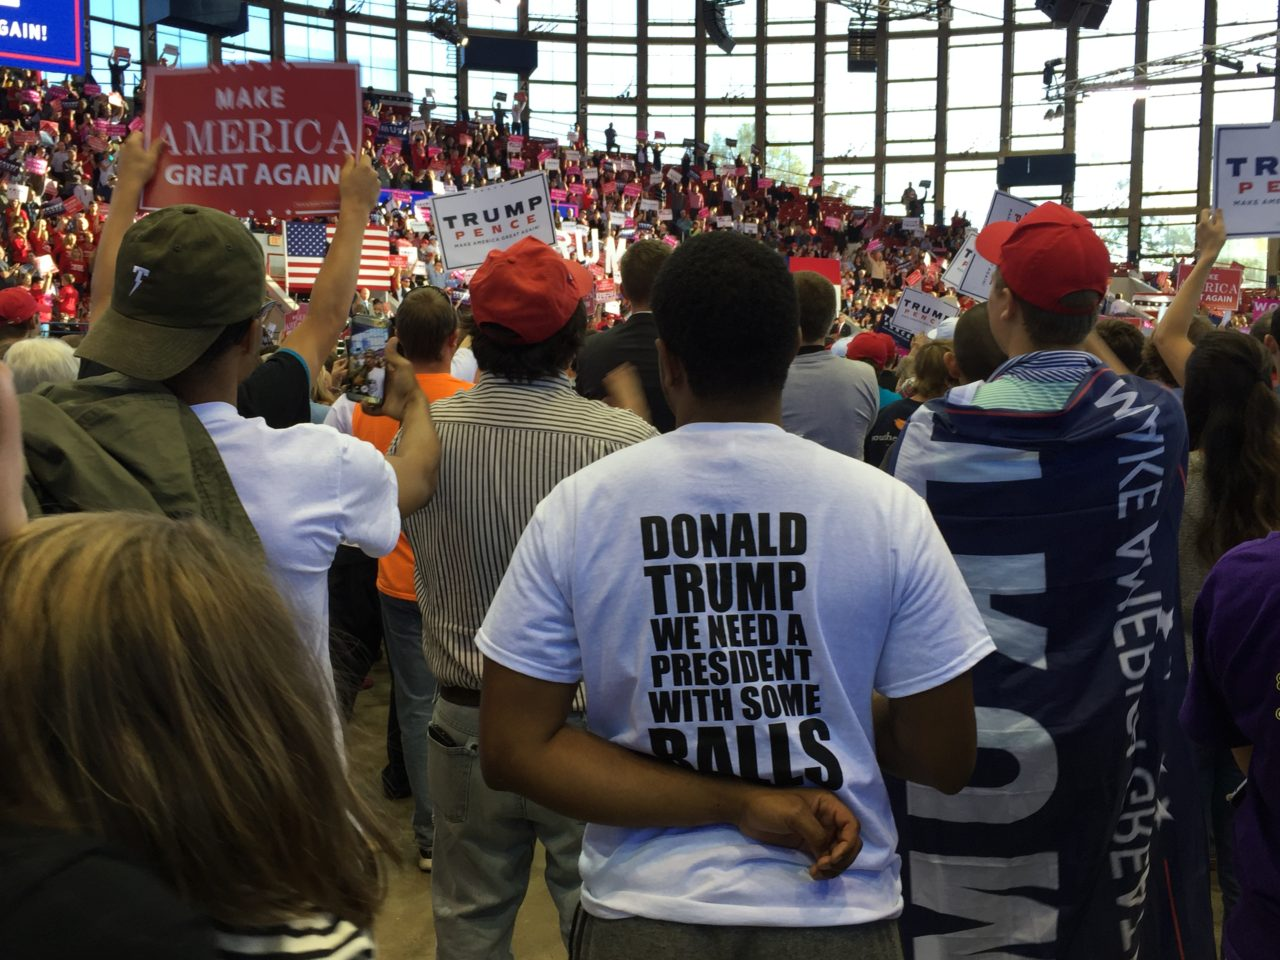 Donald Trump Raleigh North Carolina Rally (Joel Pollak / Breitbart News)